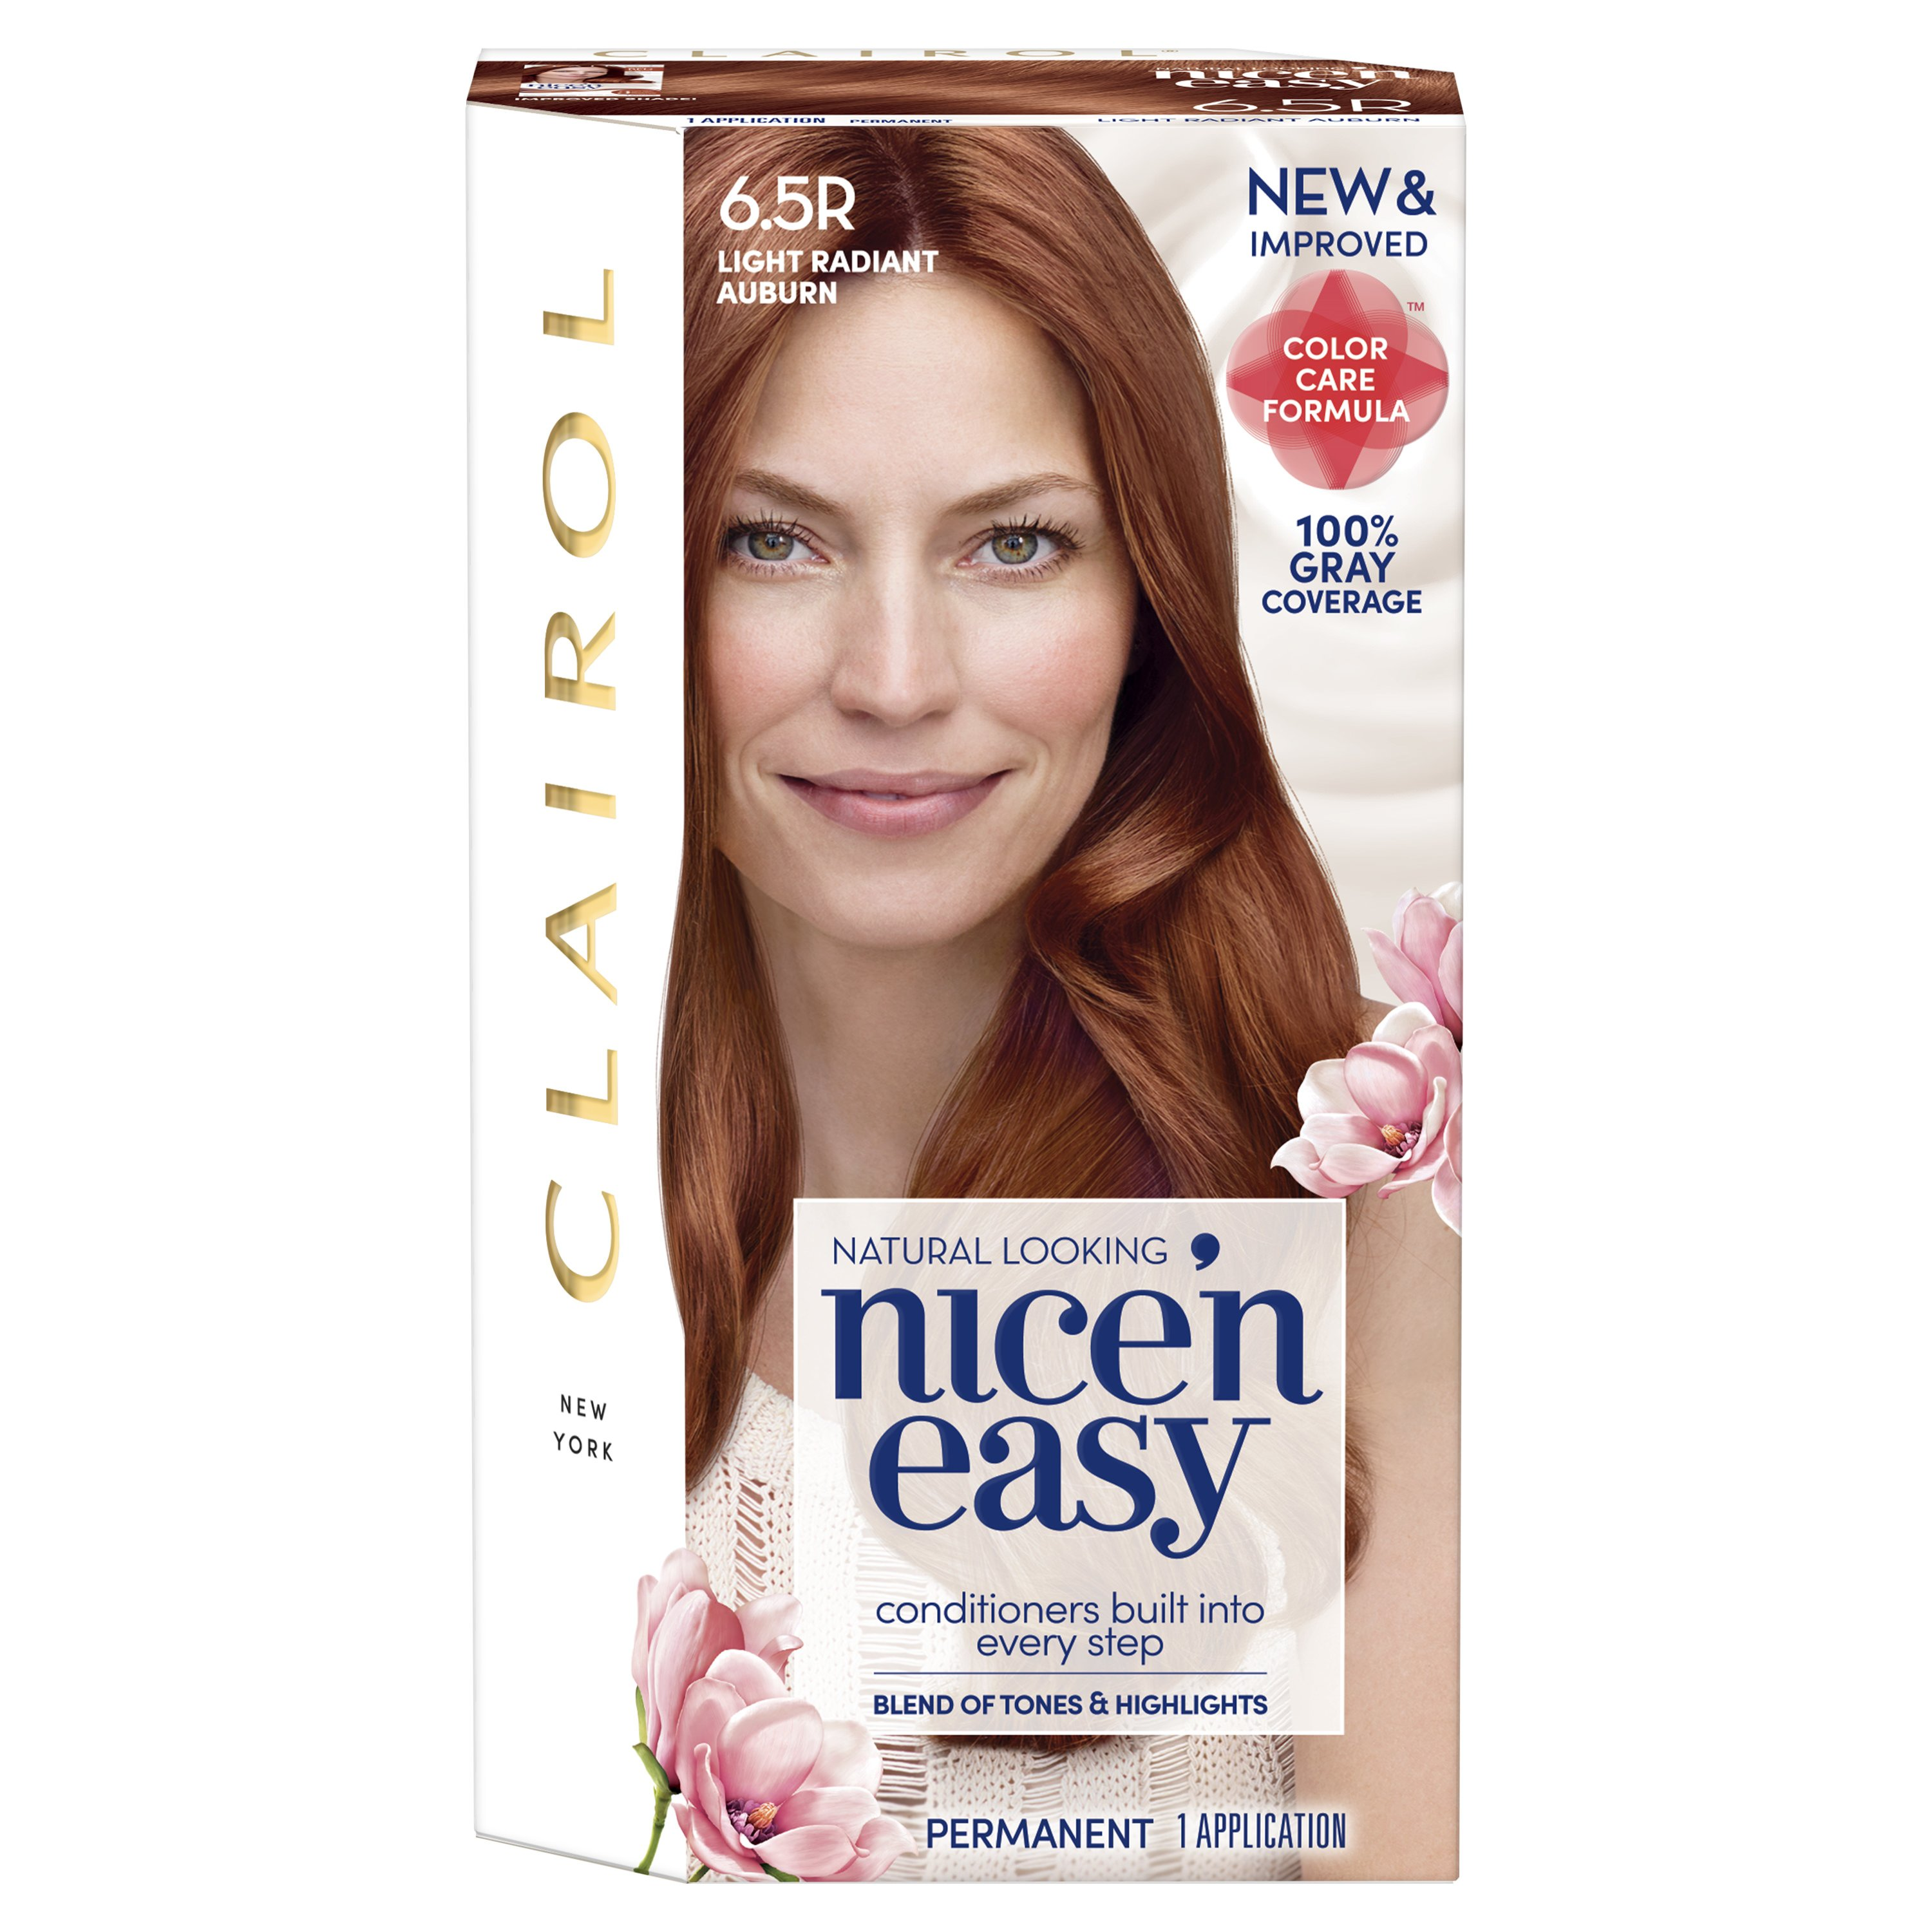 Free Clairol Nice N Easy Hair Color 6 5R Light Radiant Auburn Wallpaper